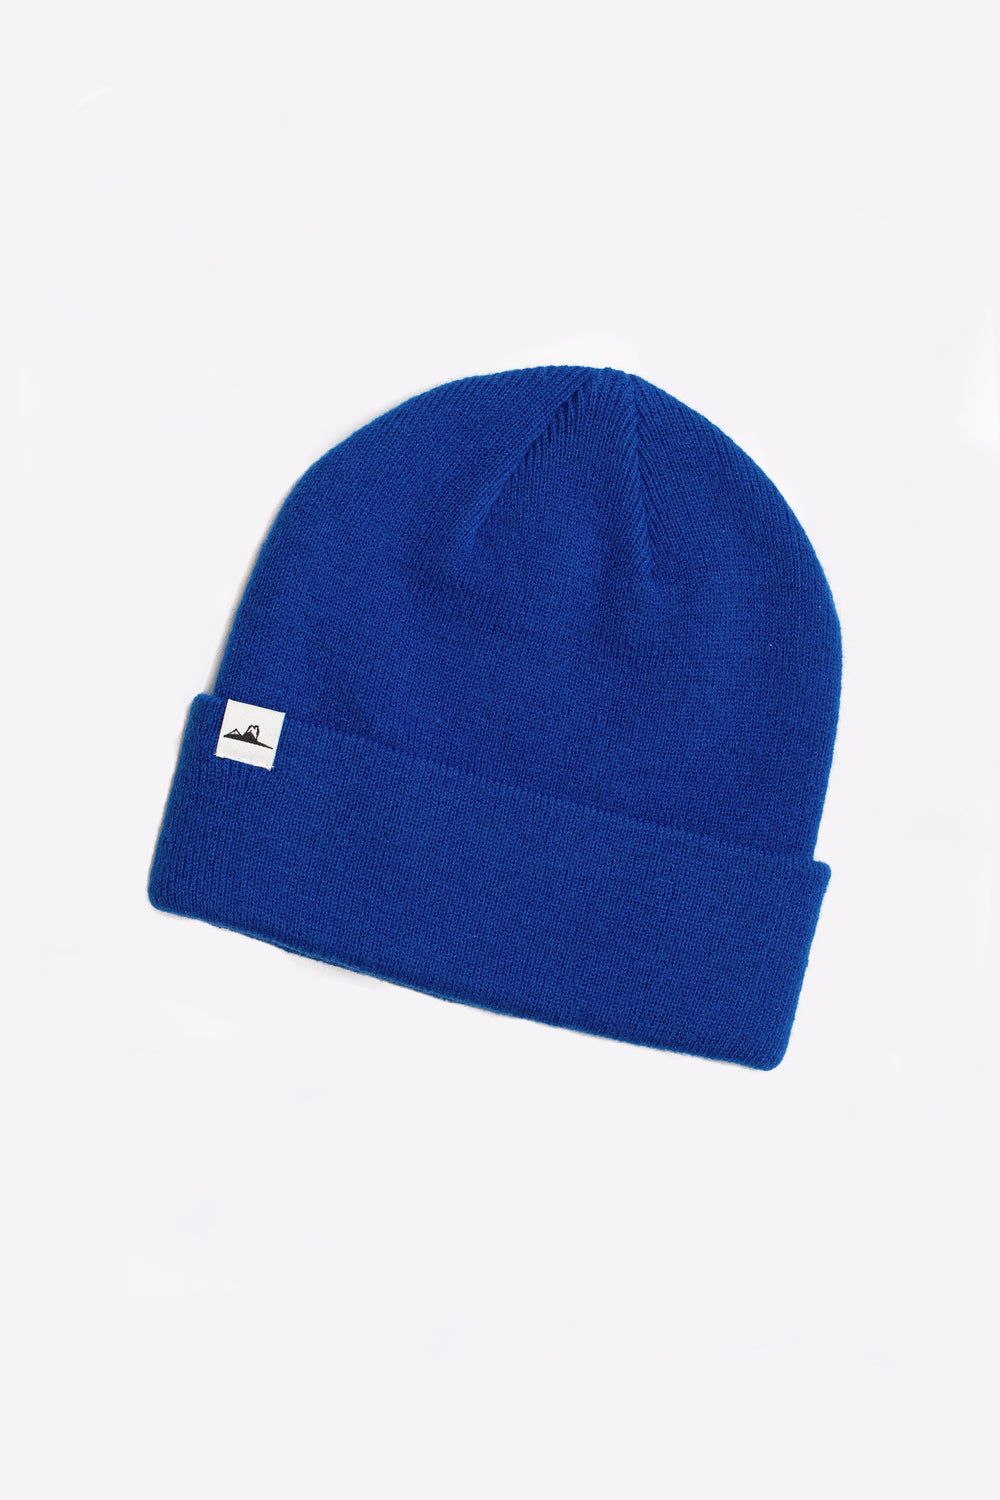 Corridor Beanie - Royal Blue